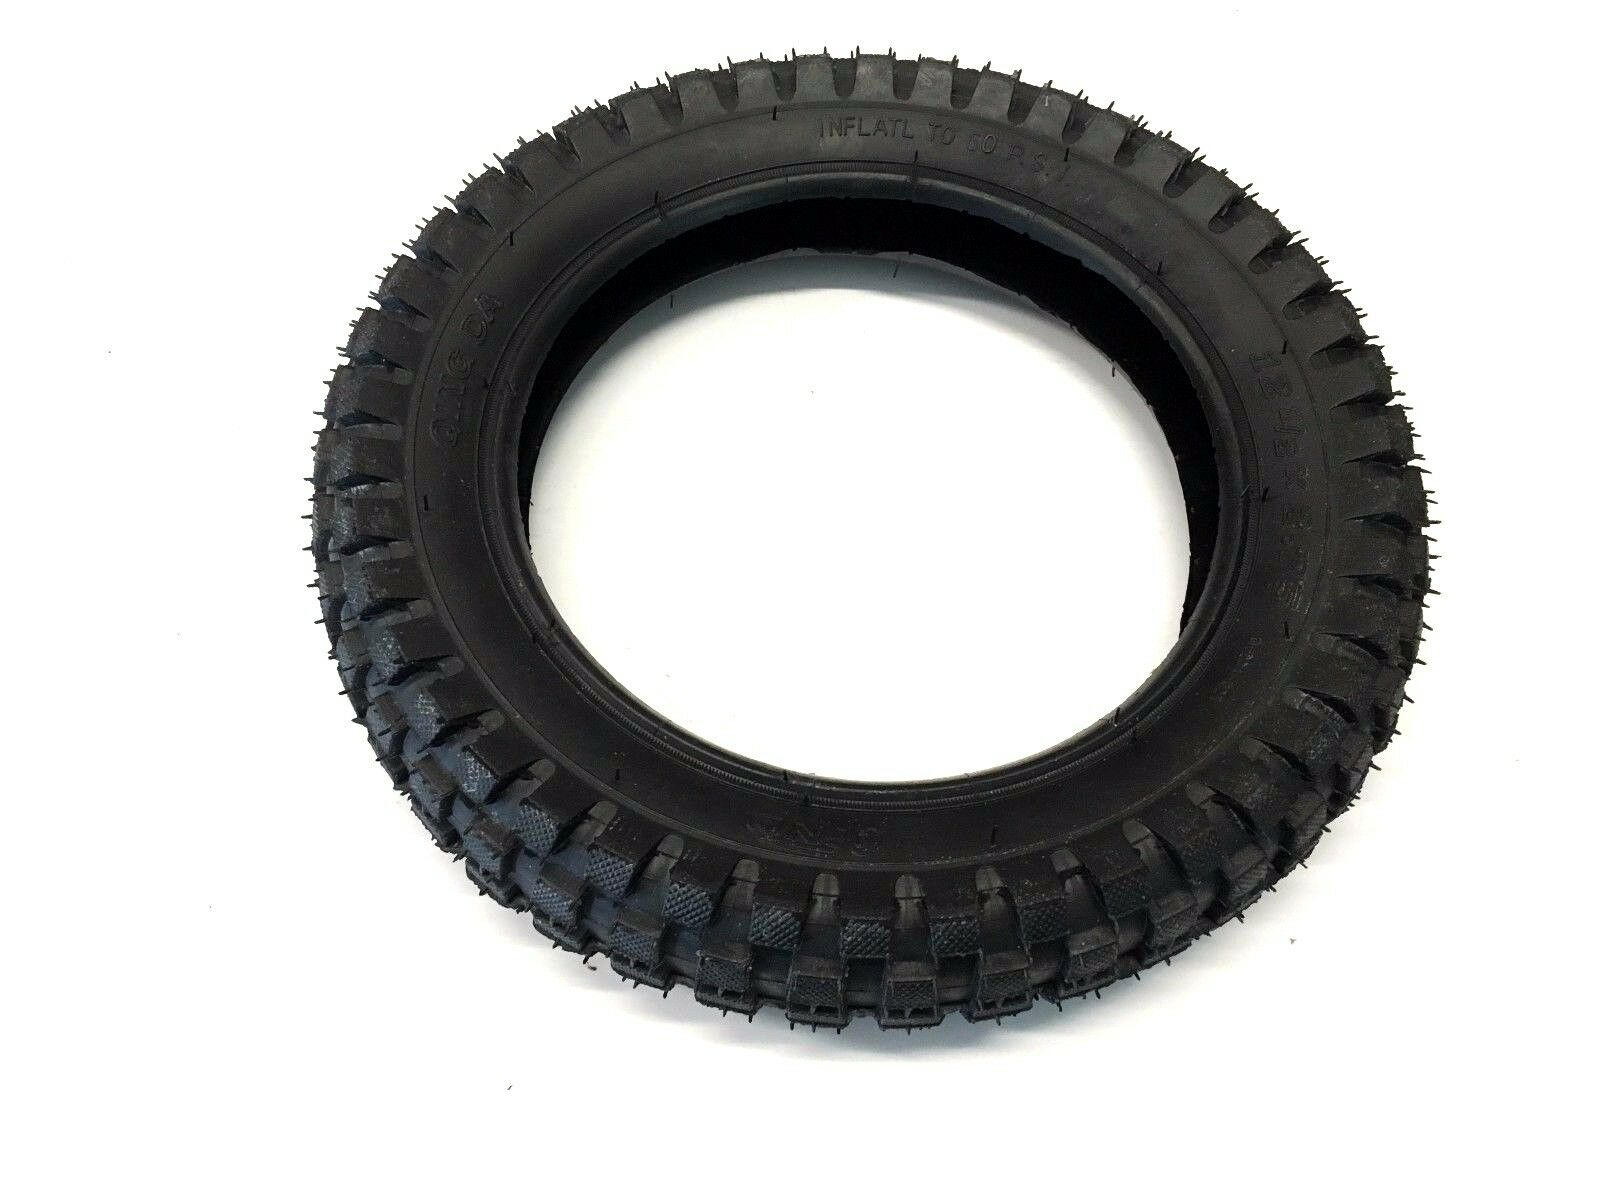 12.5x2.75 REPLACEMENT TIRE PIT BIKES DIRT BIKES RAZOR MX350 MX400 12 12 X 2 34